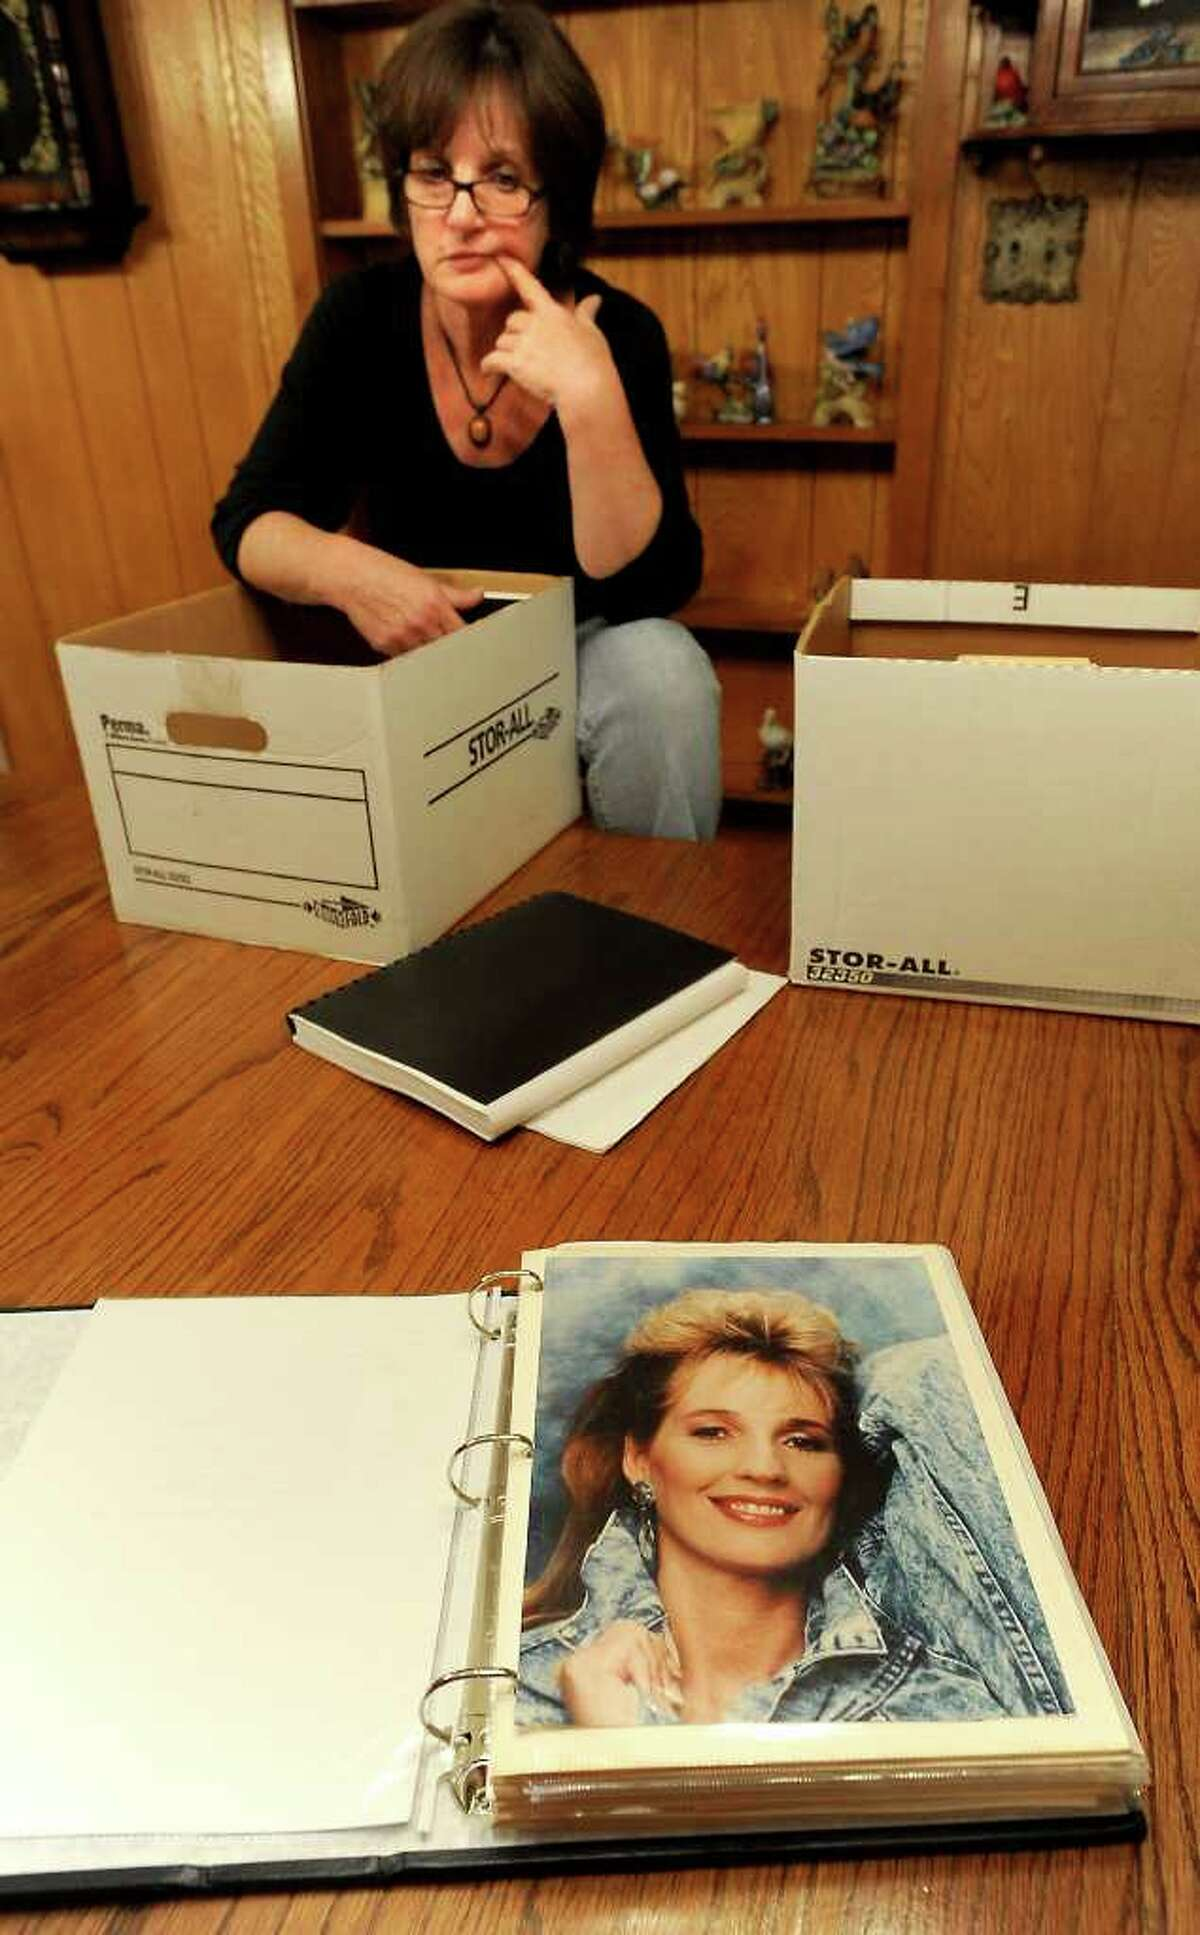 Diane Daigle talks about the death of her sister Kathy Page in Rose City, Friday. It's been 20 years since Kathy Page was found murdered in her vehicle and the case remains unsolved. Tammy McKinley/The Enterprise